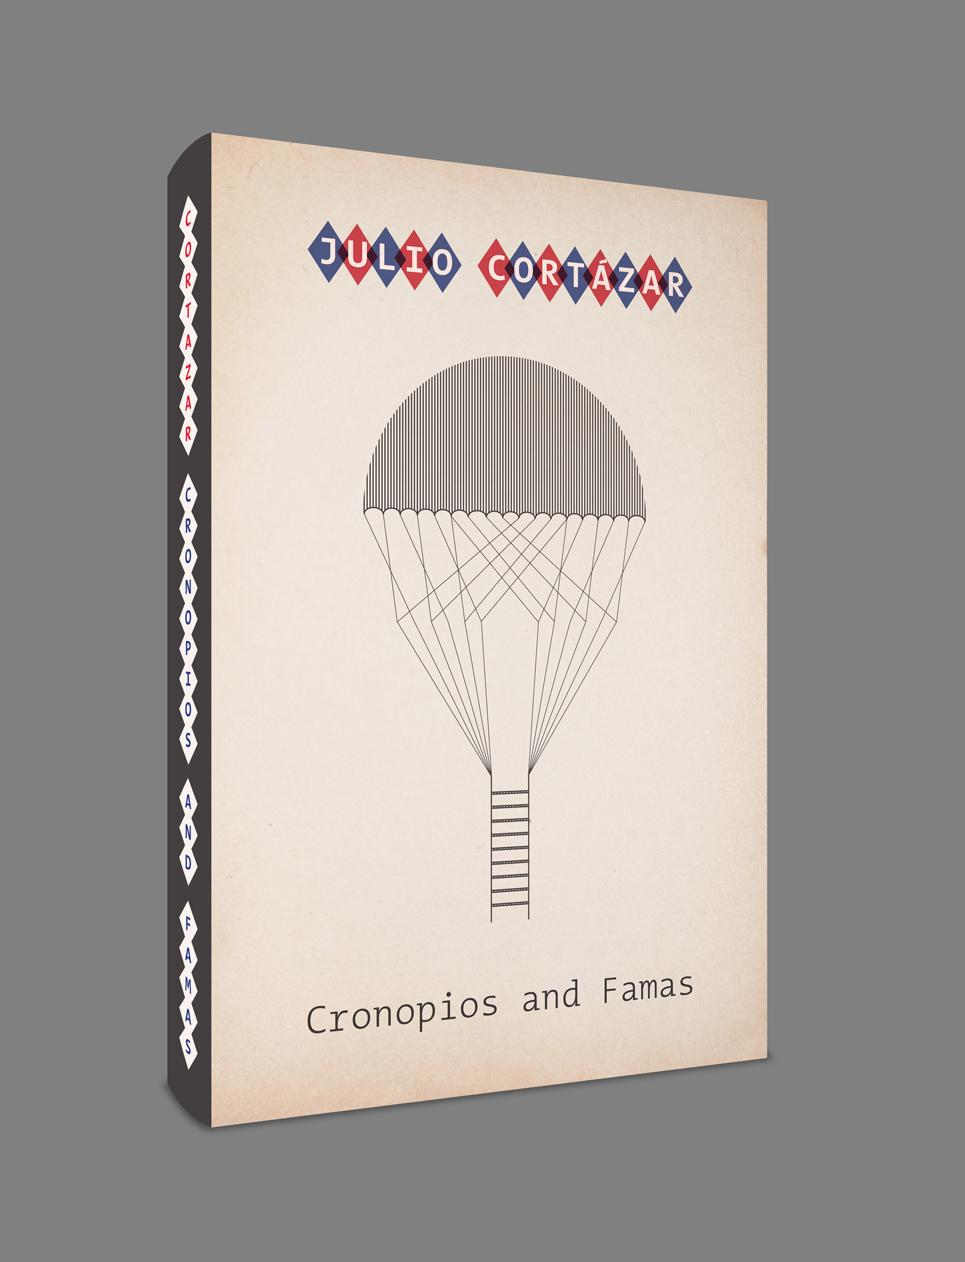 Cronopios And Famas By Julio Cortzar Skillshare Projects